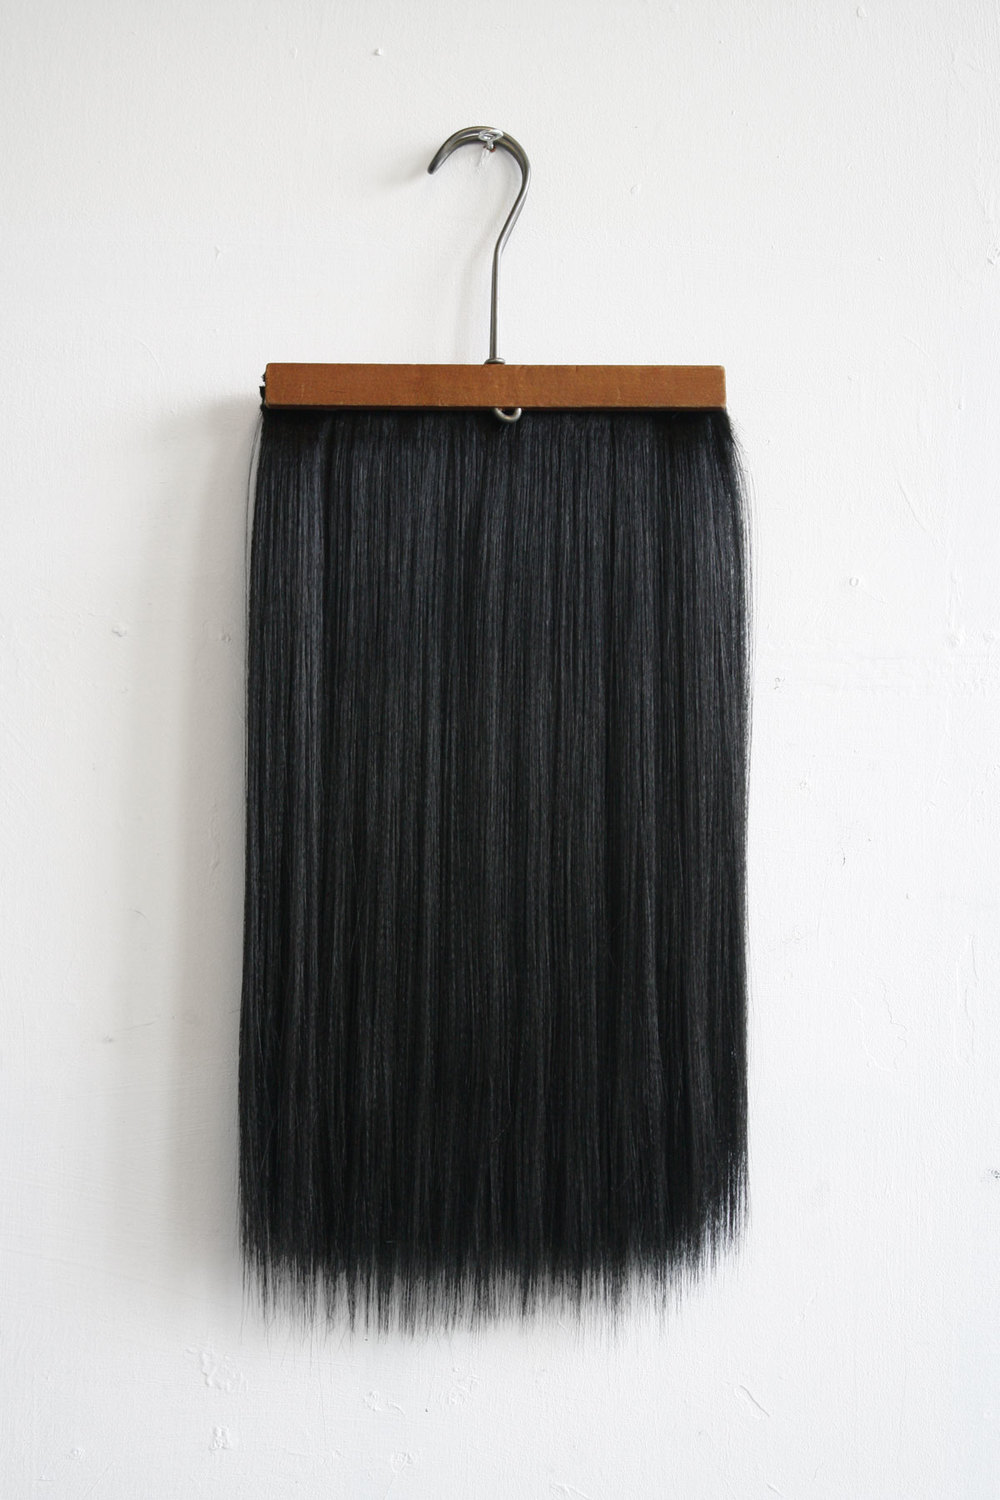 Chaetophobia (Trouser Hanger 2) 20 x 53 cm  Wooden hanger and synthetic hair 2015